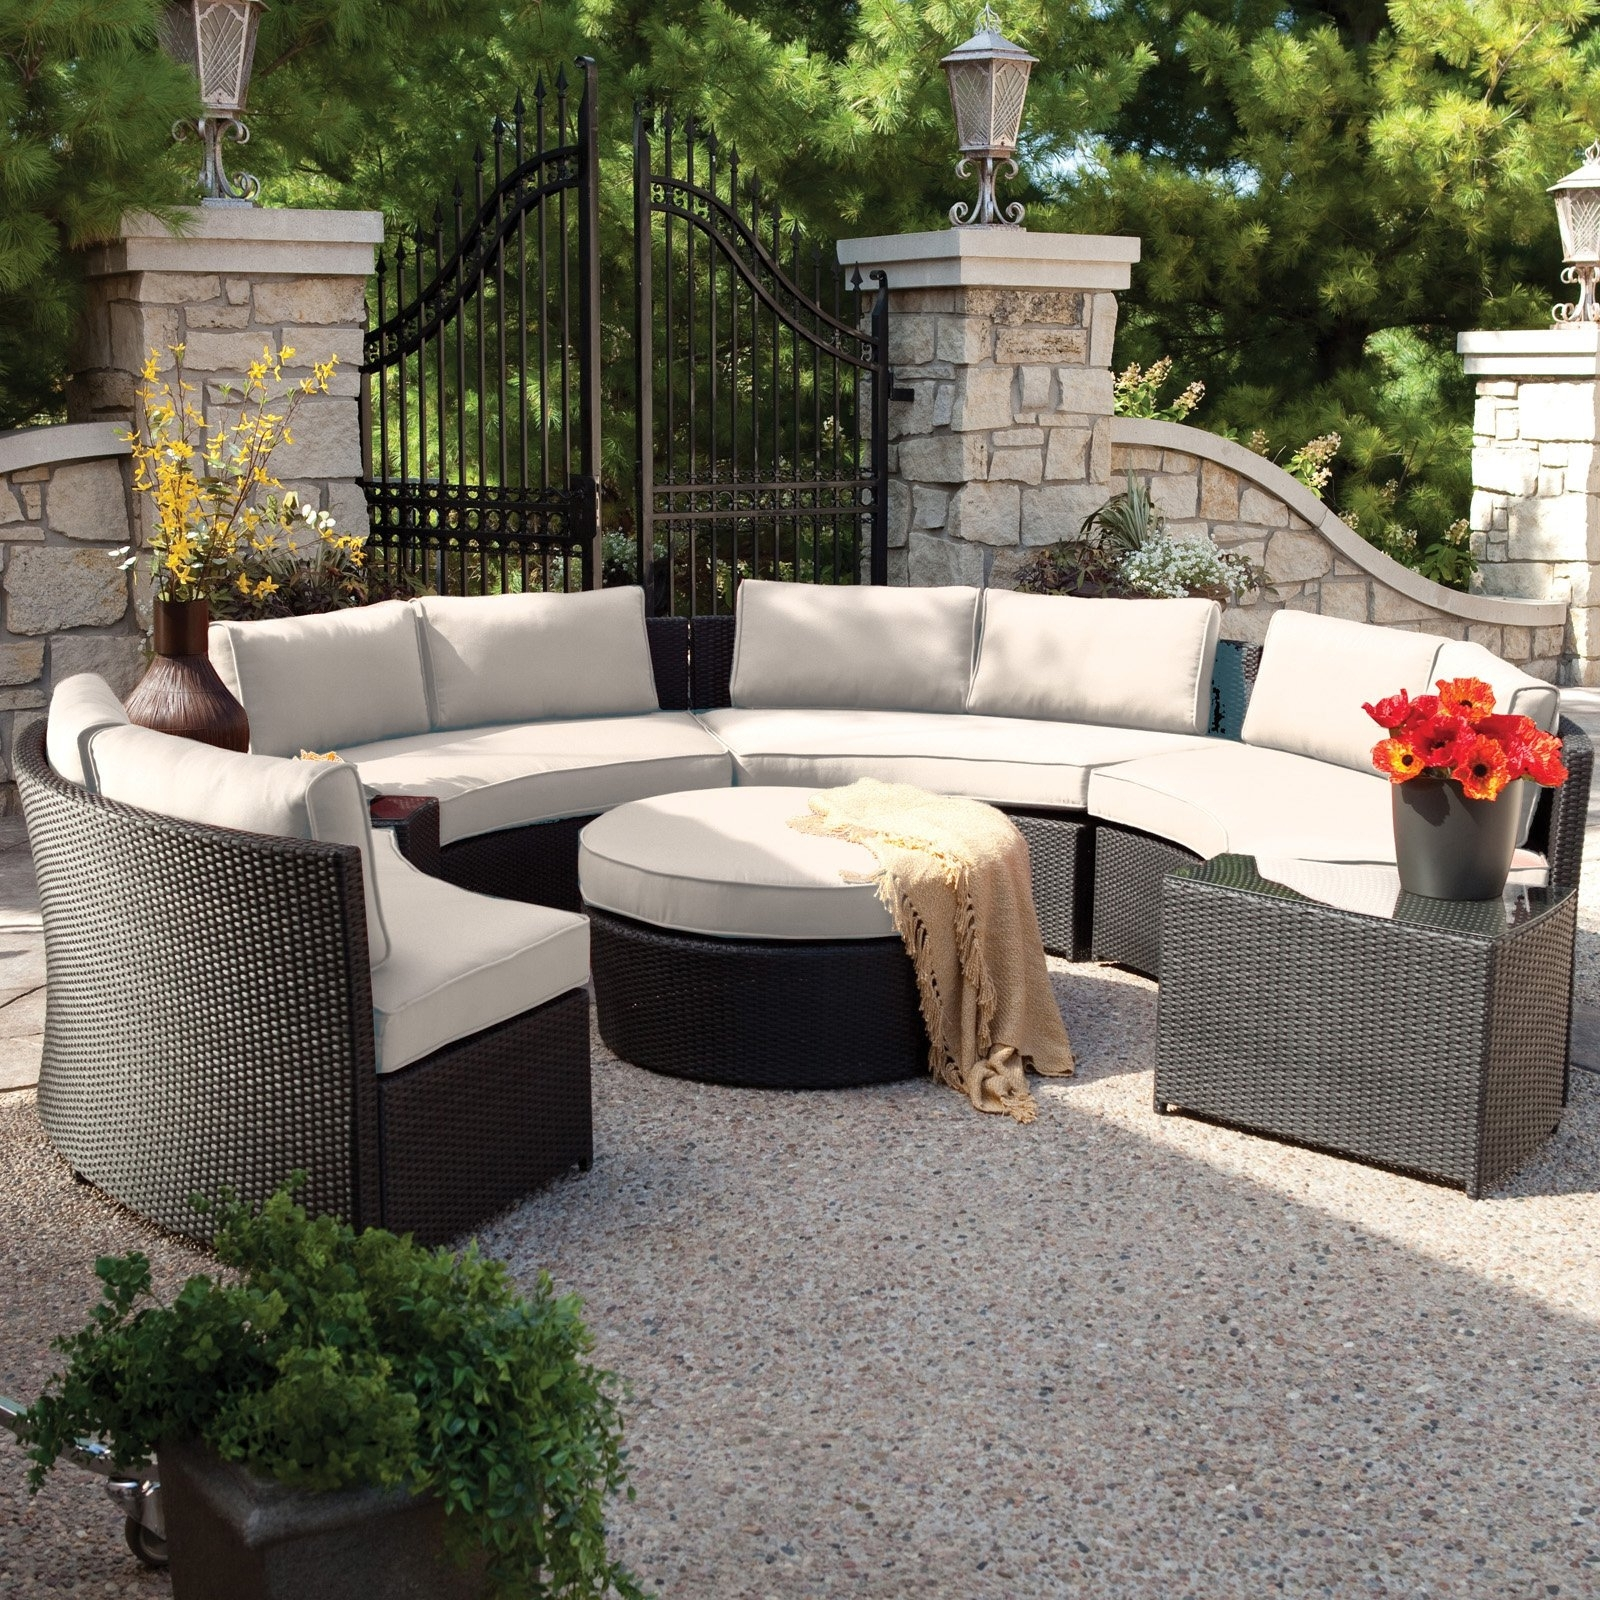 Belham Living Meridian Round Outdoor Wicker Patio Furniture Set With Inside Well Known Round Patio Conversation Sets (View 2 of 20)